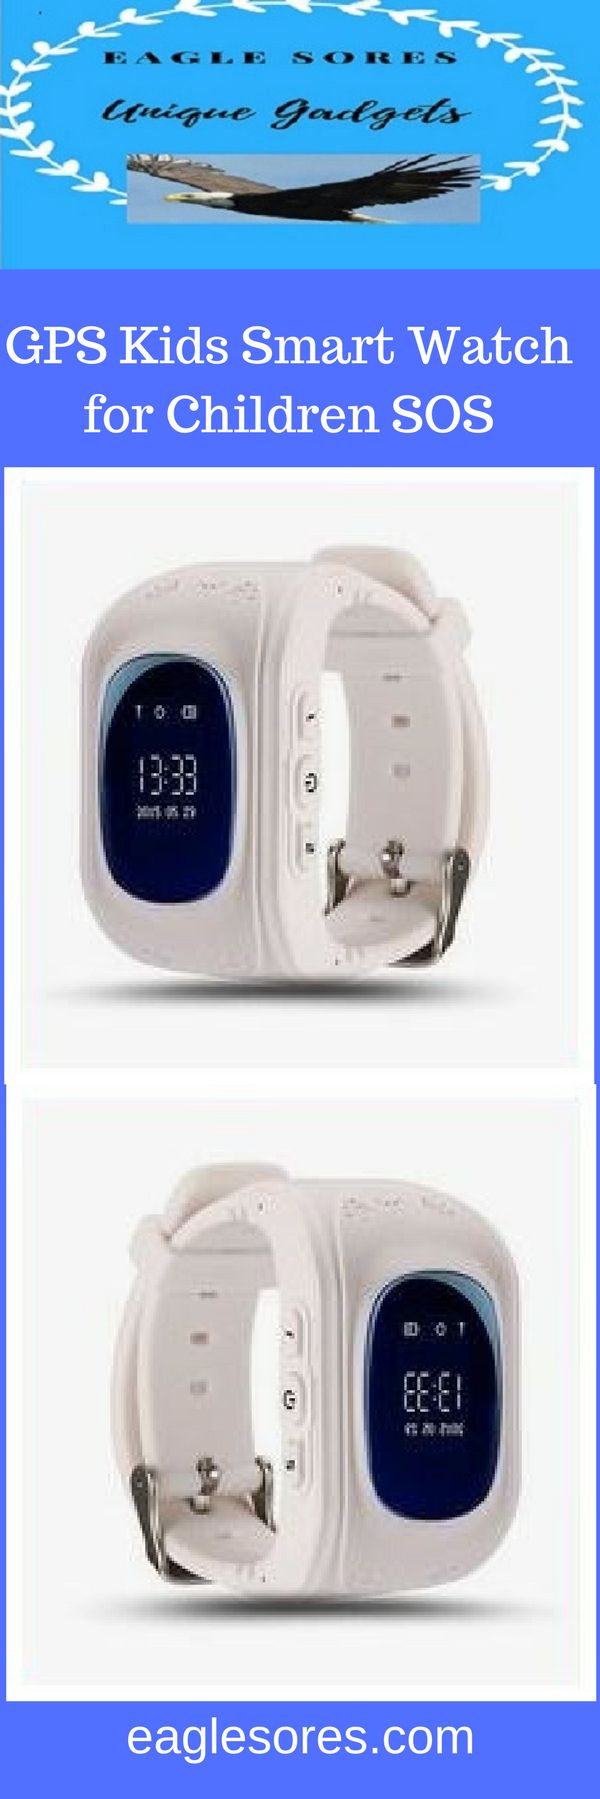 GPS Kids Watches Baby Smart Watch for Children SOS, Call Location Finder, Locator Tracker, Anti Lost Monitor, Smartwatch Band Detachable  The best smart watch on the market!  http://amzn.to/2vzndjv